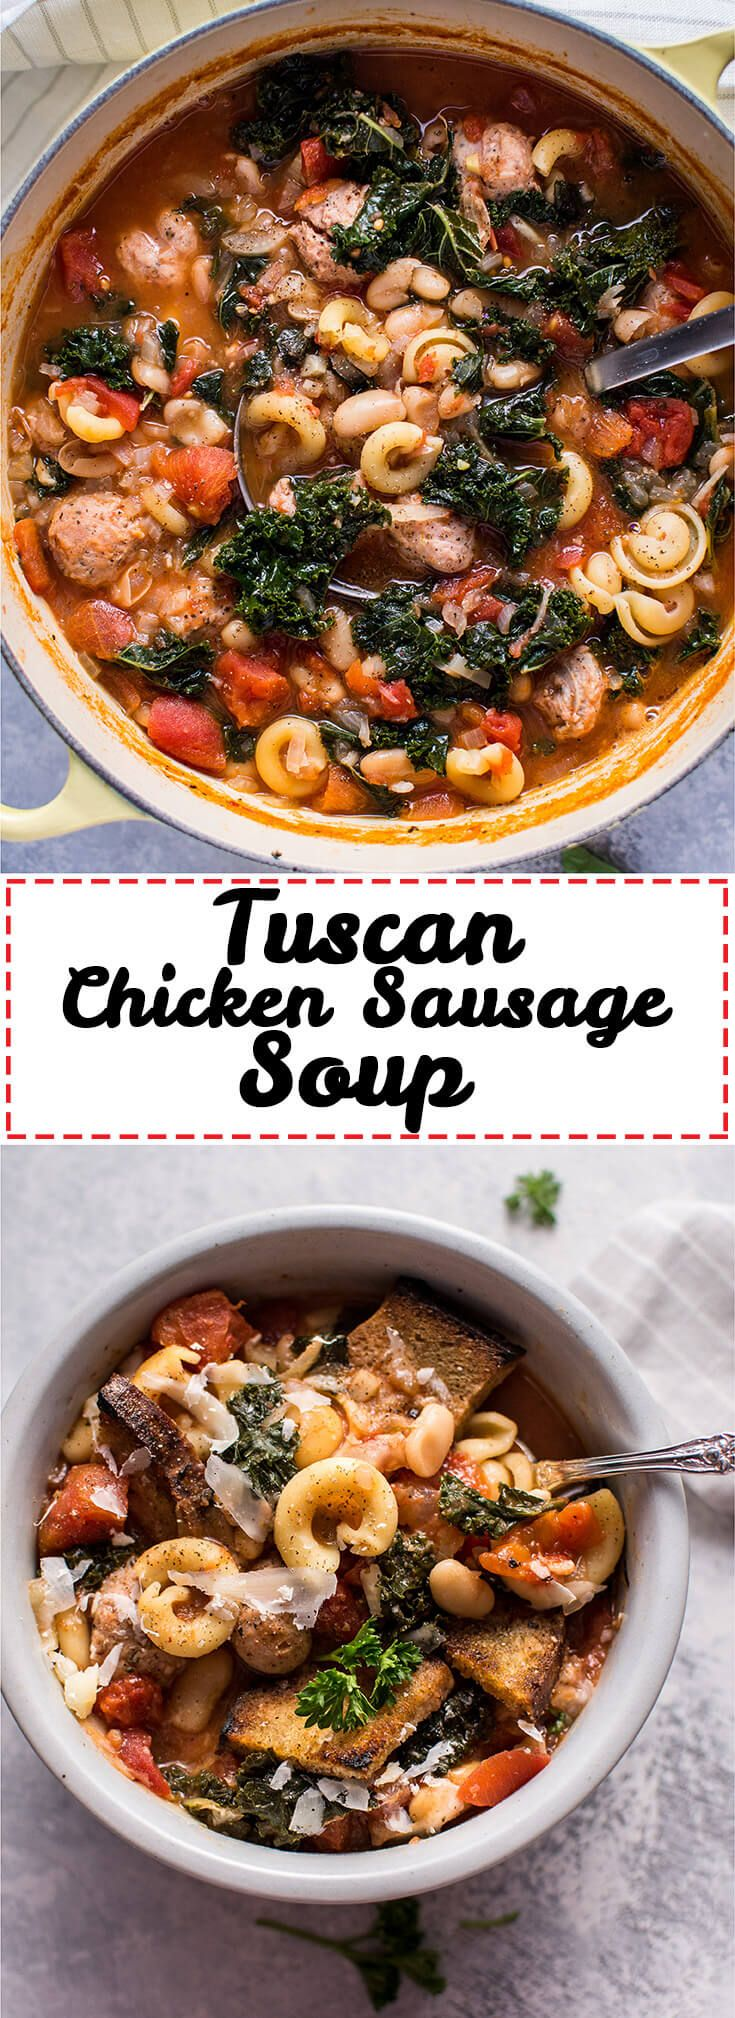 This Tuscan chicken sausage soup with white beans and pasta is healthy, hearty, and full of flavor! Optional garlic croutons and parmesan shavings make it extra delicious.